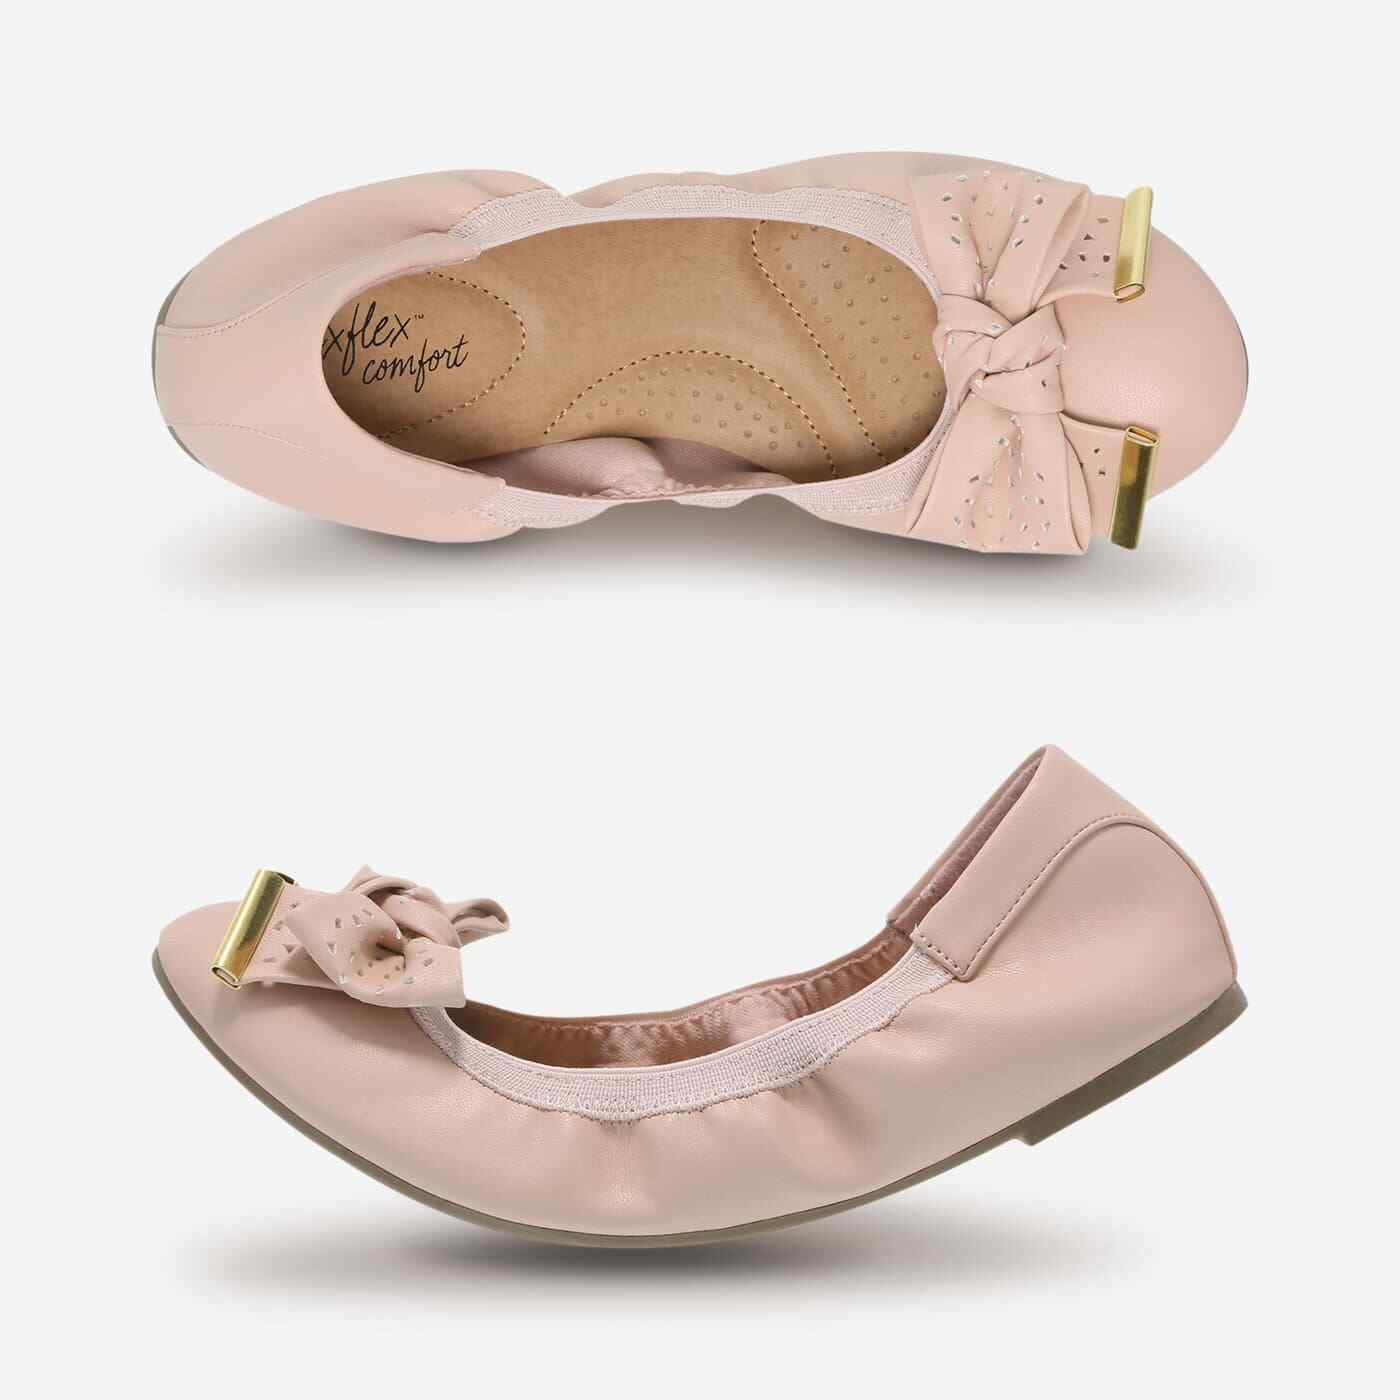 Dexflex Comfort Women's Casey Bow Scrunch Ballet Flat shoes Smooth bluesh Pink